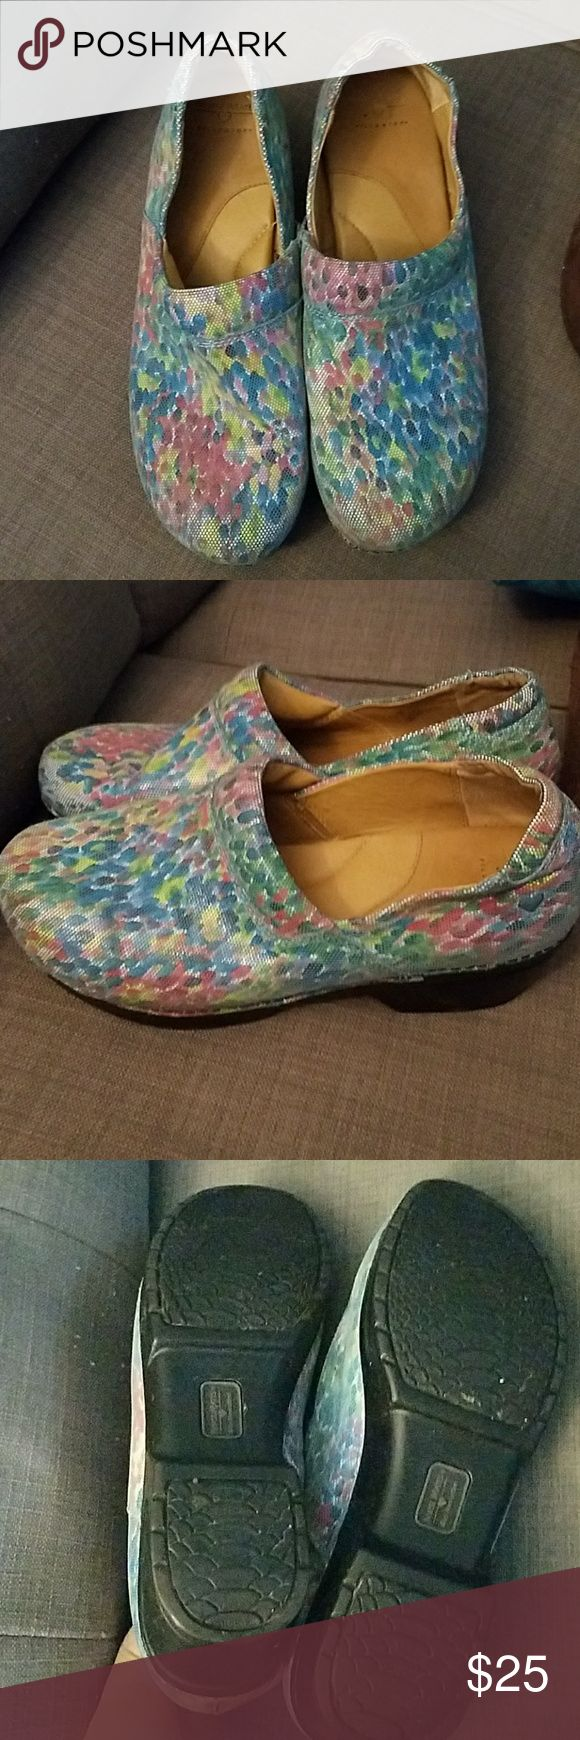 Nurse mate shoes Nurse mate shoes. They are in very good condition. Size 11 Nurse Mates Shoes Mules & Clogs